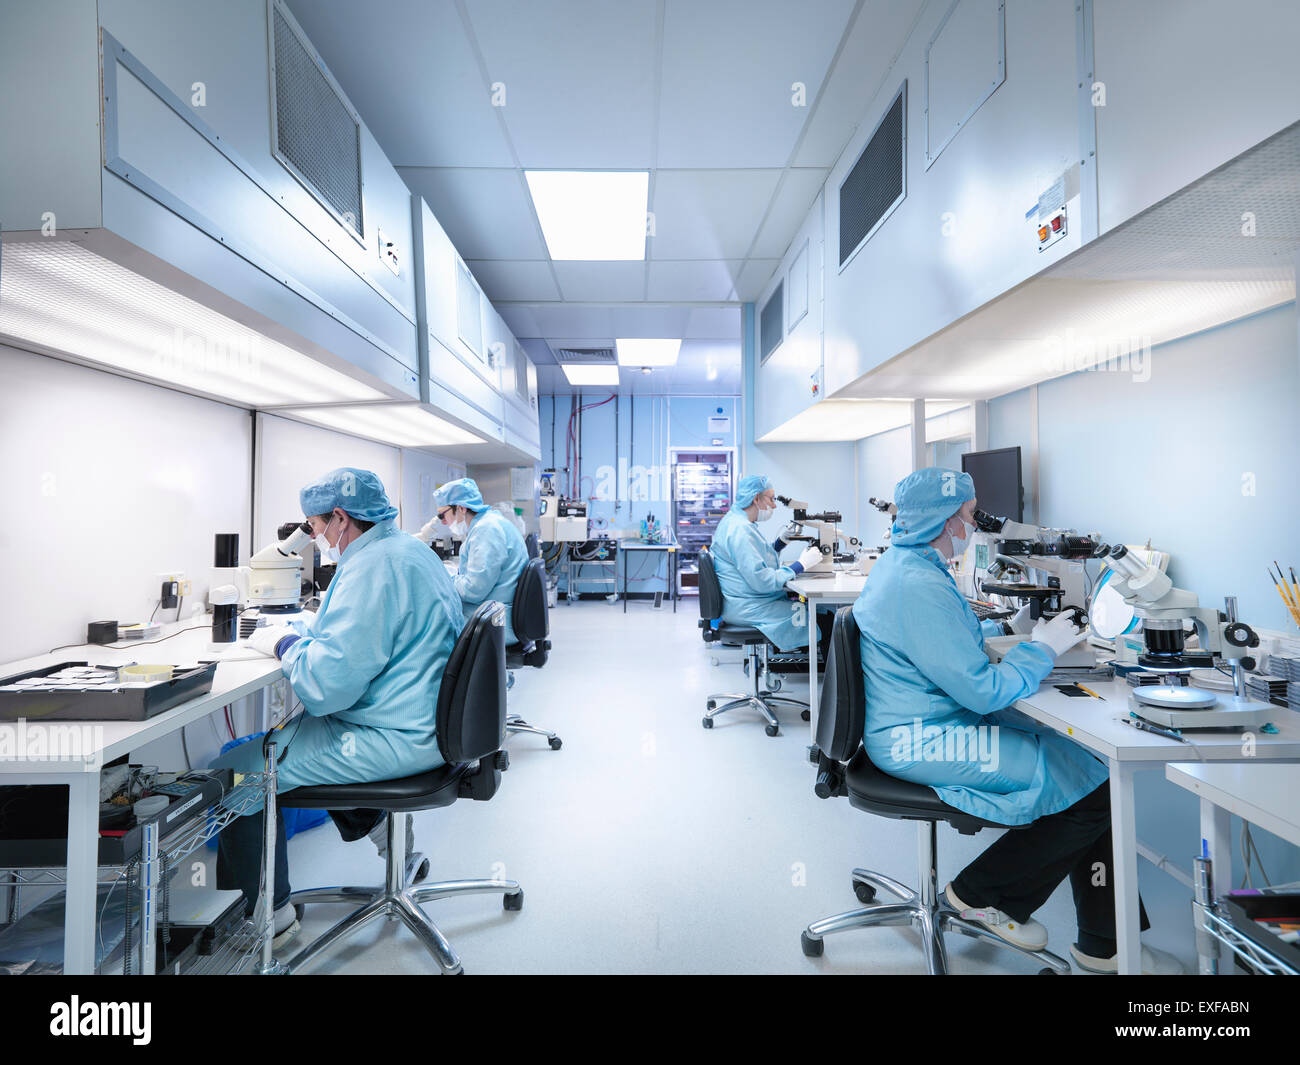 Electronics workers in clean room assembling electronic components - Stock Image